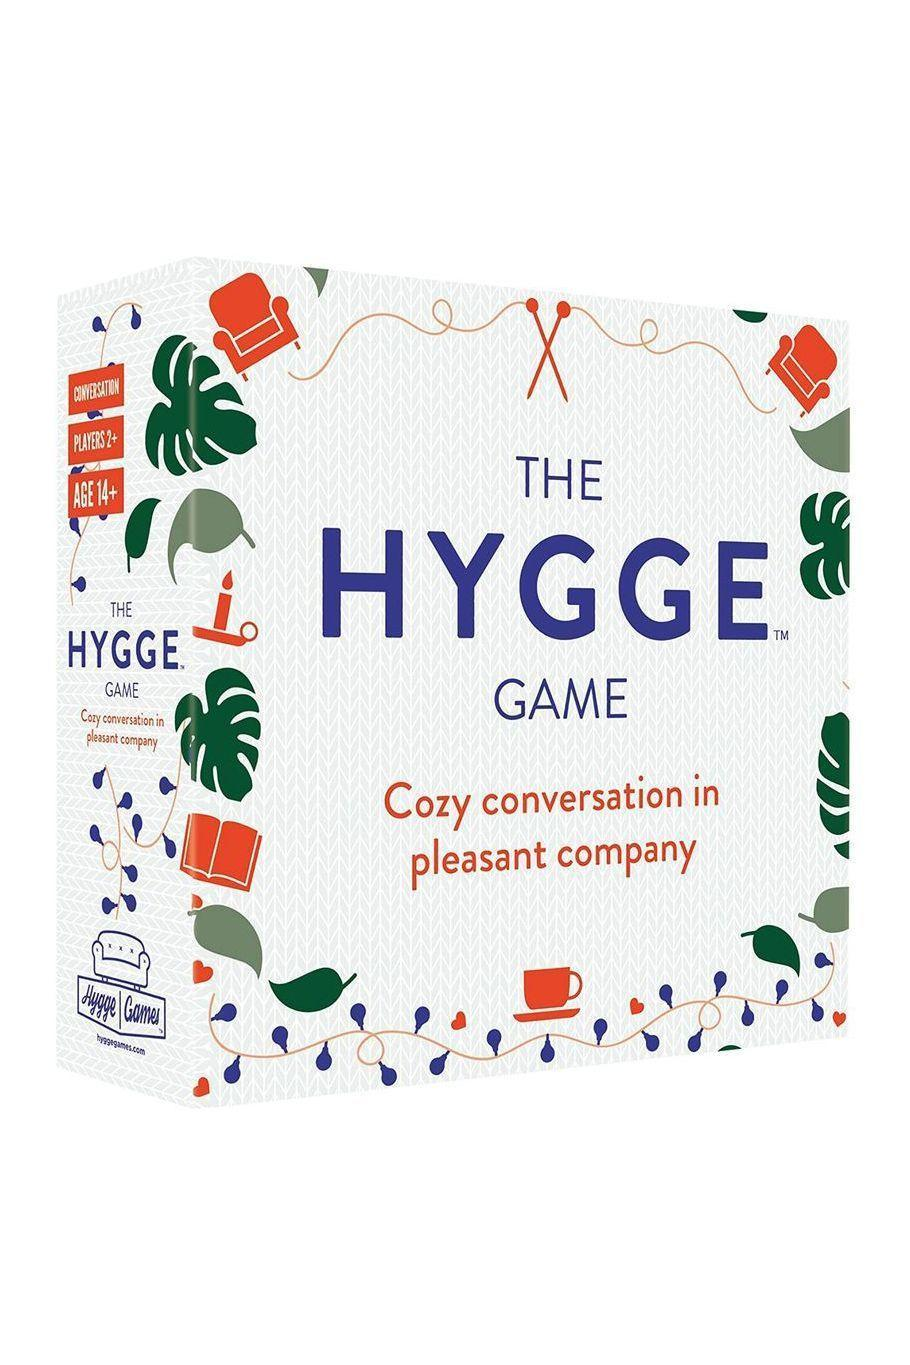 """<p><strong>Hygge Games</strong></p><p>amazon.com</p><p><strong>$20.00</strong></p><p><a href=""""https://www.amazon.com/dp/B0778X7GNL?tag=syn-yahoo-20&ascsubtag=%5Bartid%7C10051.g.13053688%5Bsrc%7Cyahoo-us"""" rel=""""nofollow noopener"""" target=""""_blank"""" data-ylk=""""slk:Shop Now"""" class=""""link rapid-noclick-resp"""">Shop Now</a></p><p>Containing 330 questions that are thought-provoking, and yet not mentally draining (i.e., """"What's the most annoying sound?""""), this game works for FaceTimes with loved ones or dinner parties, when we eventually start to hold those again.</p>"""